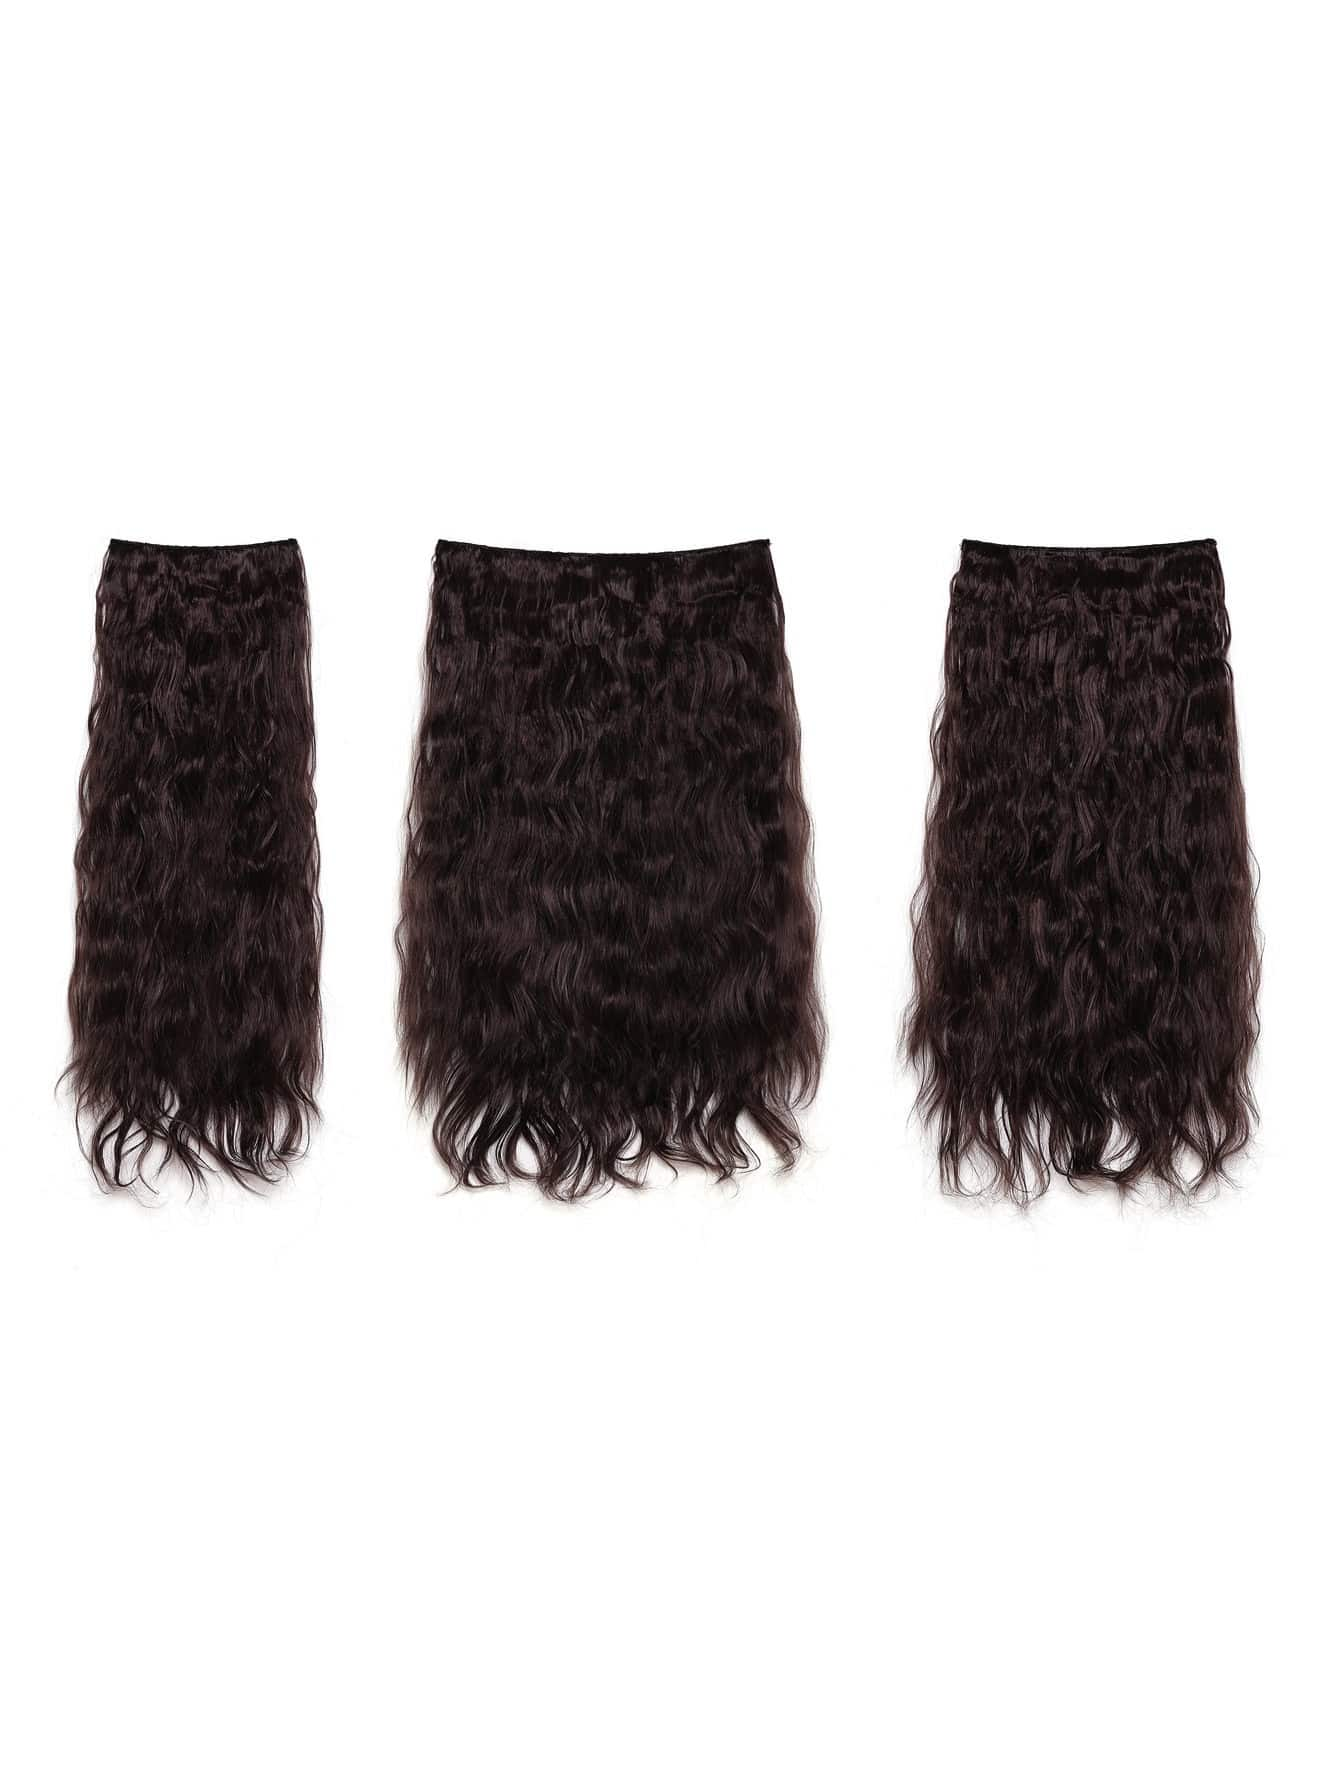 Plum Clip In Curly Hair Extension 3pcs